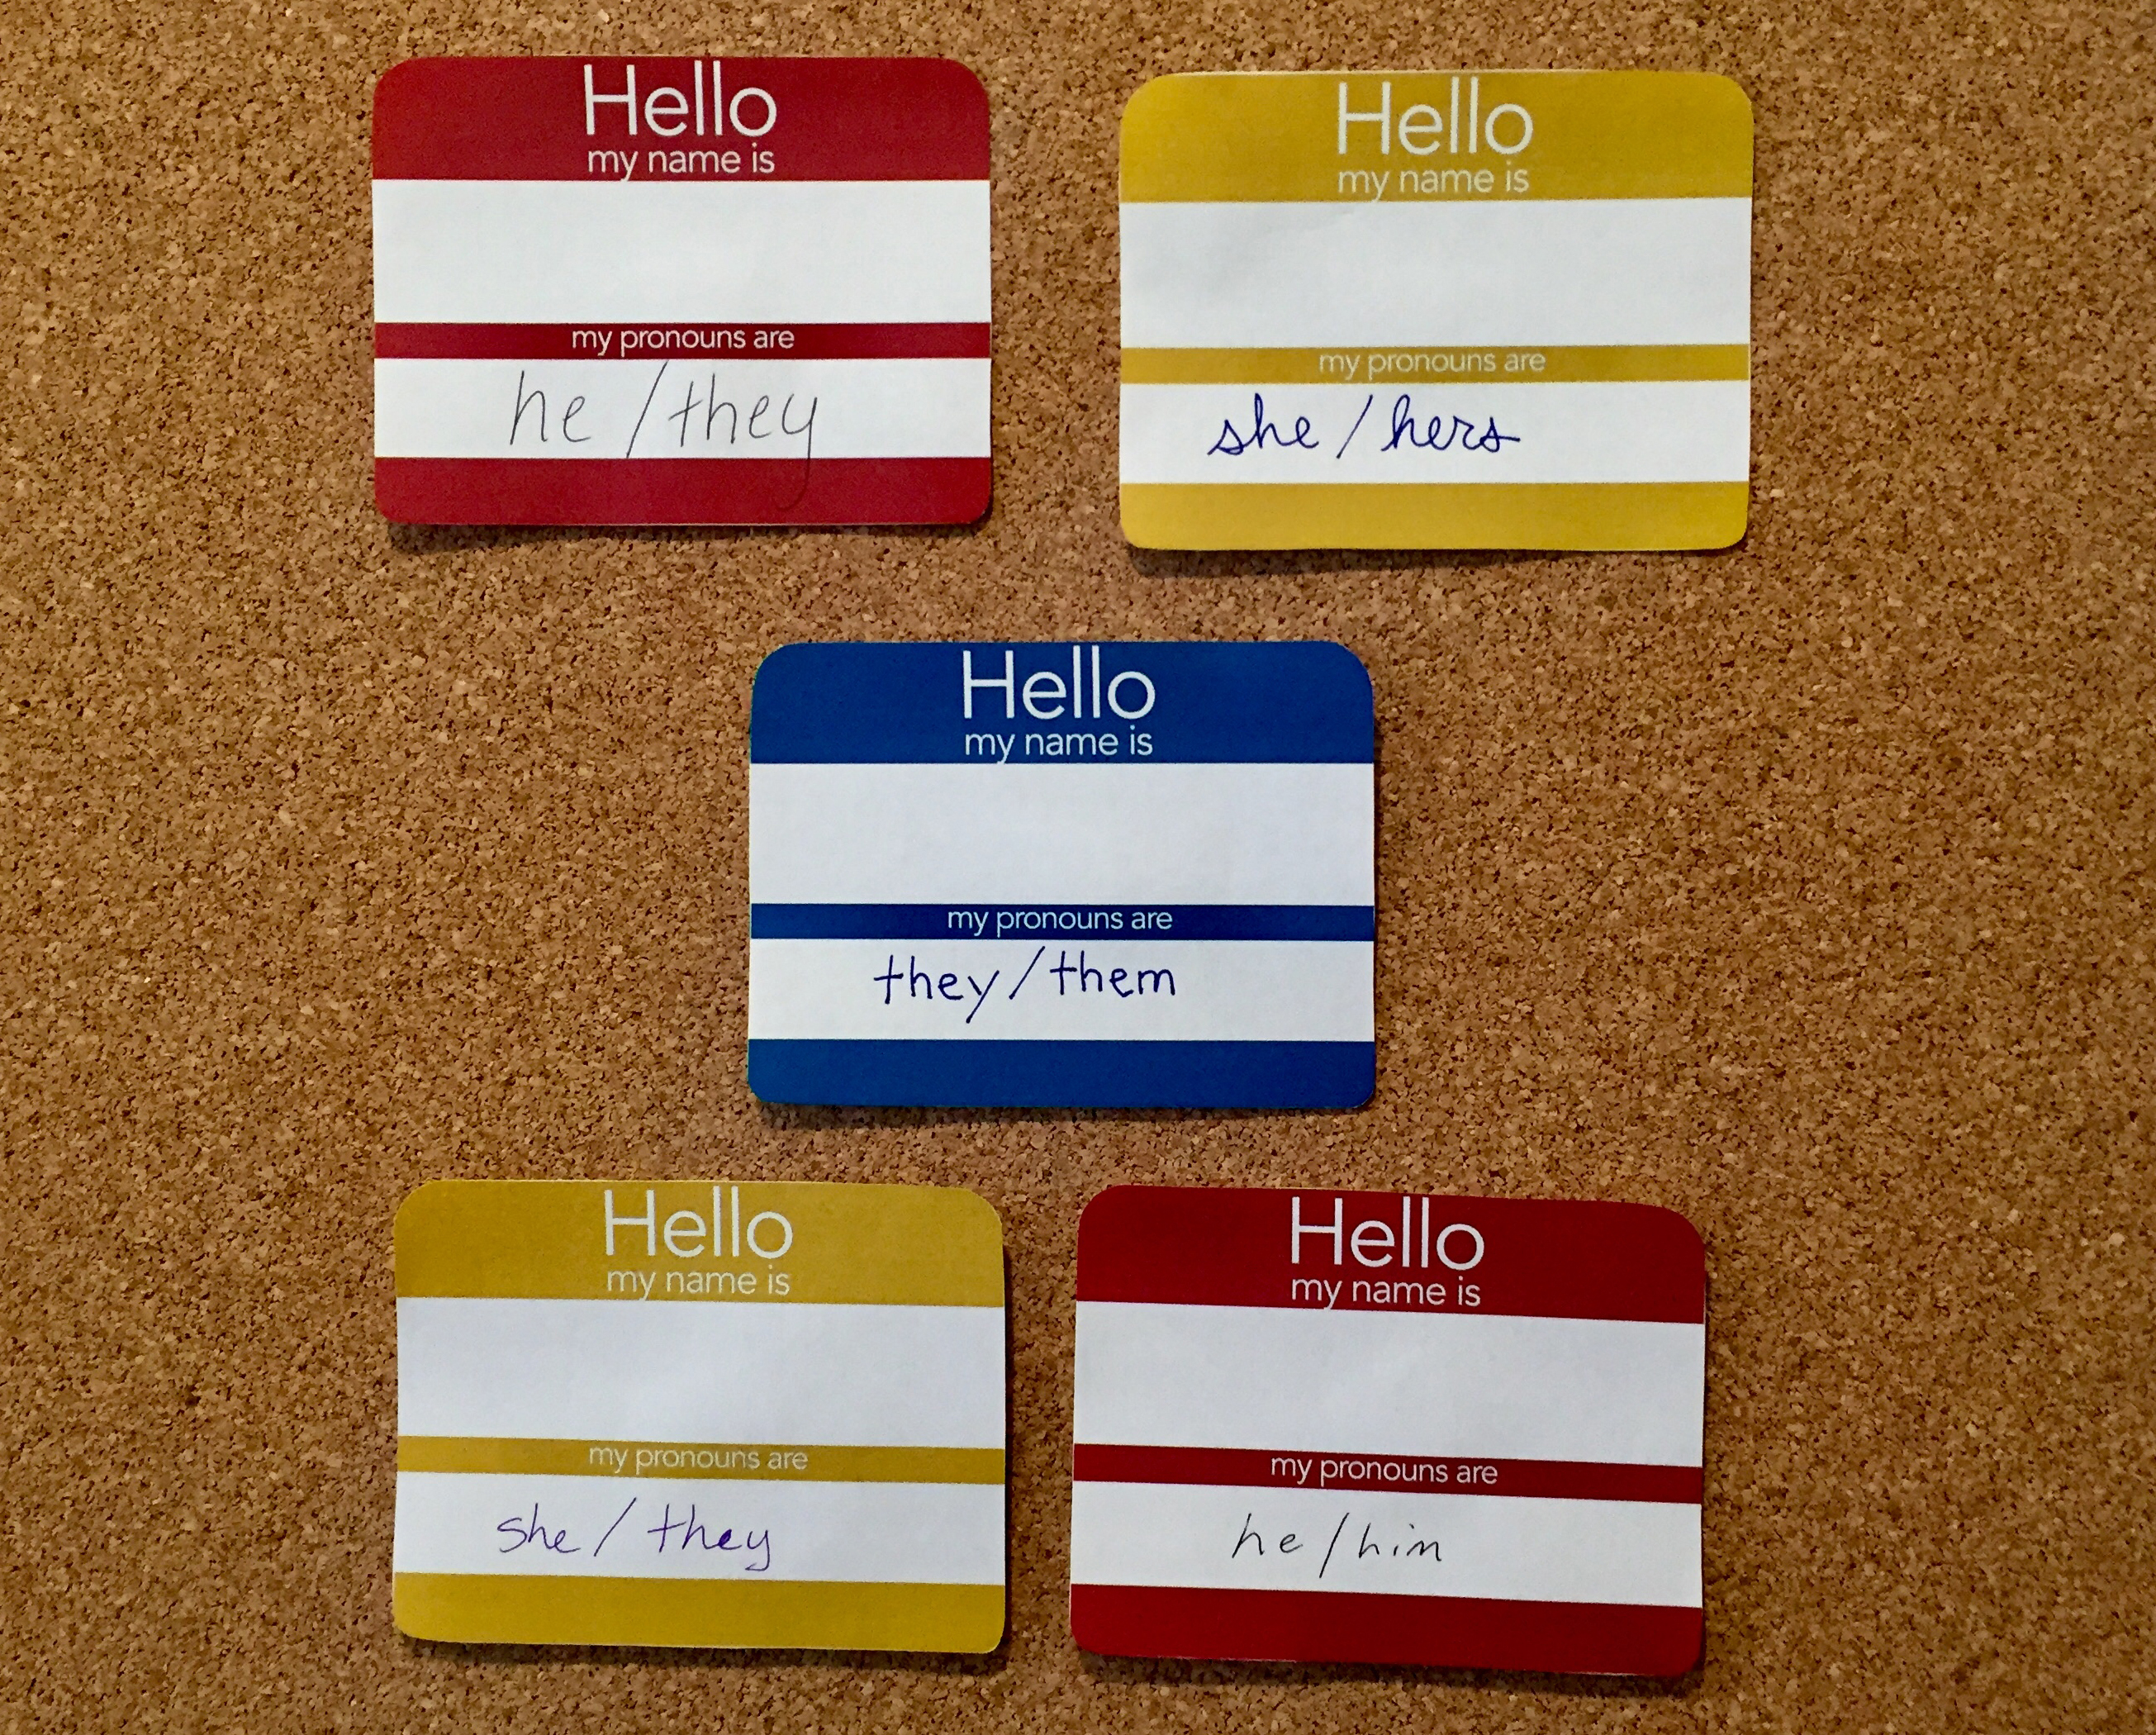 In professional contexts like conferences and classrooms, providing a space for participants to identify their pronouns has become an easy way to show respect for others.